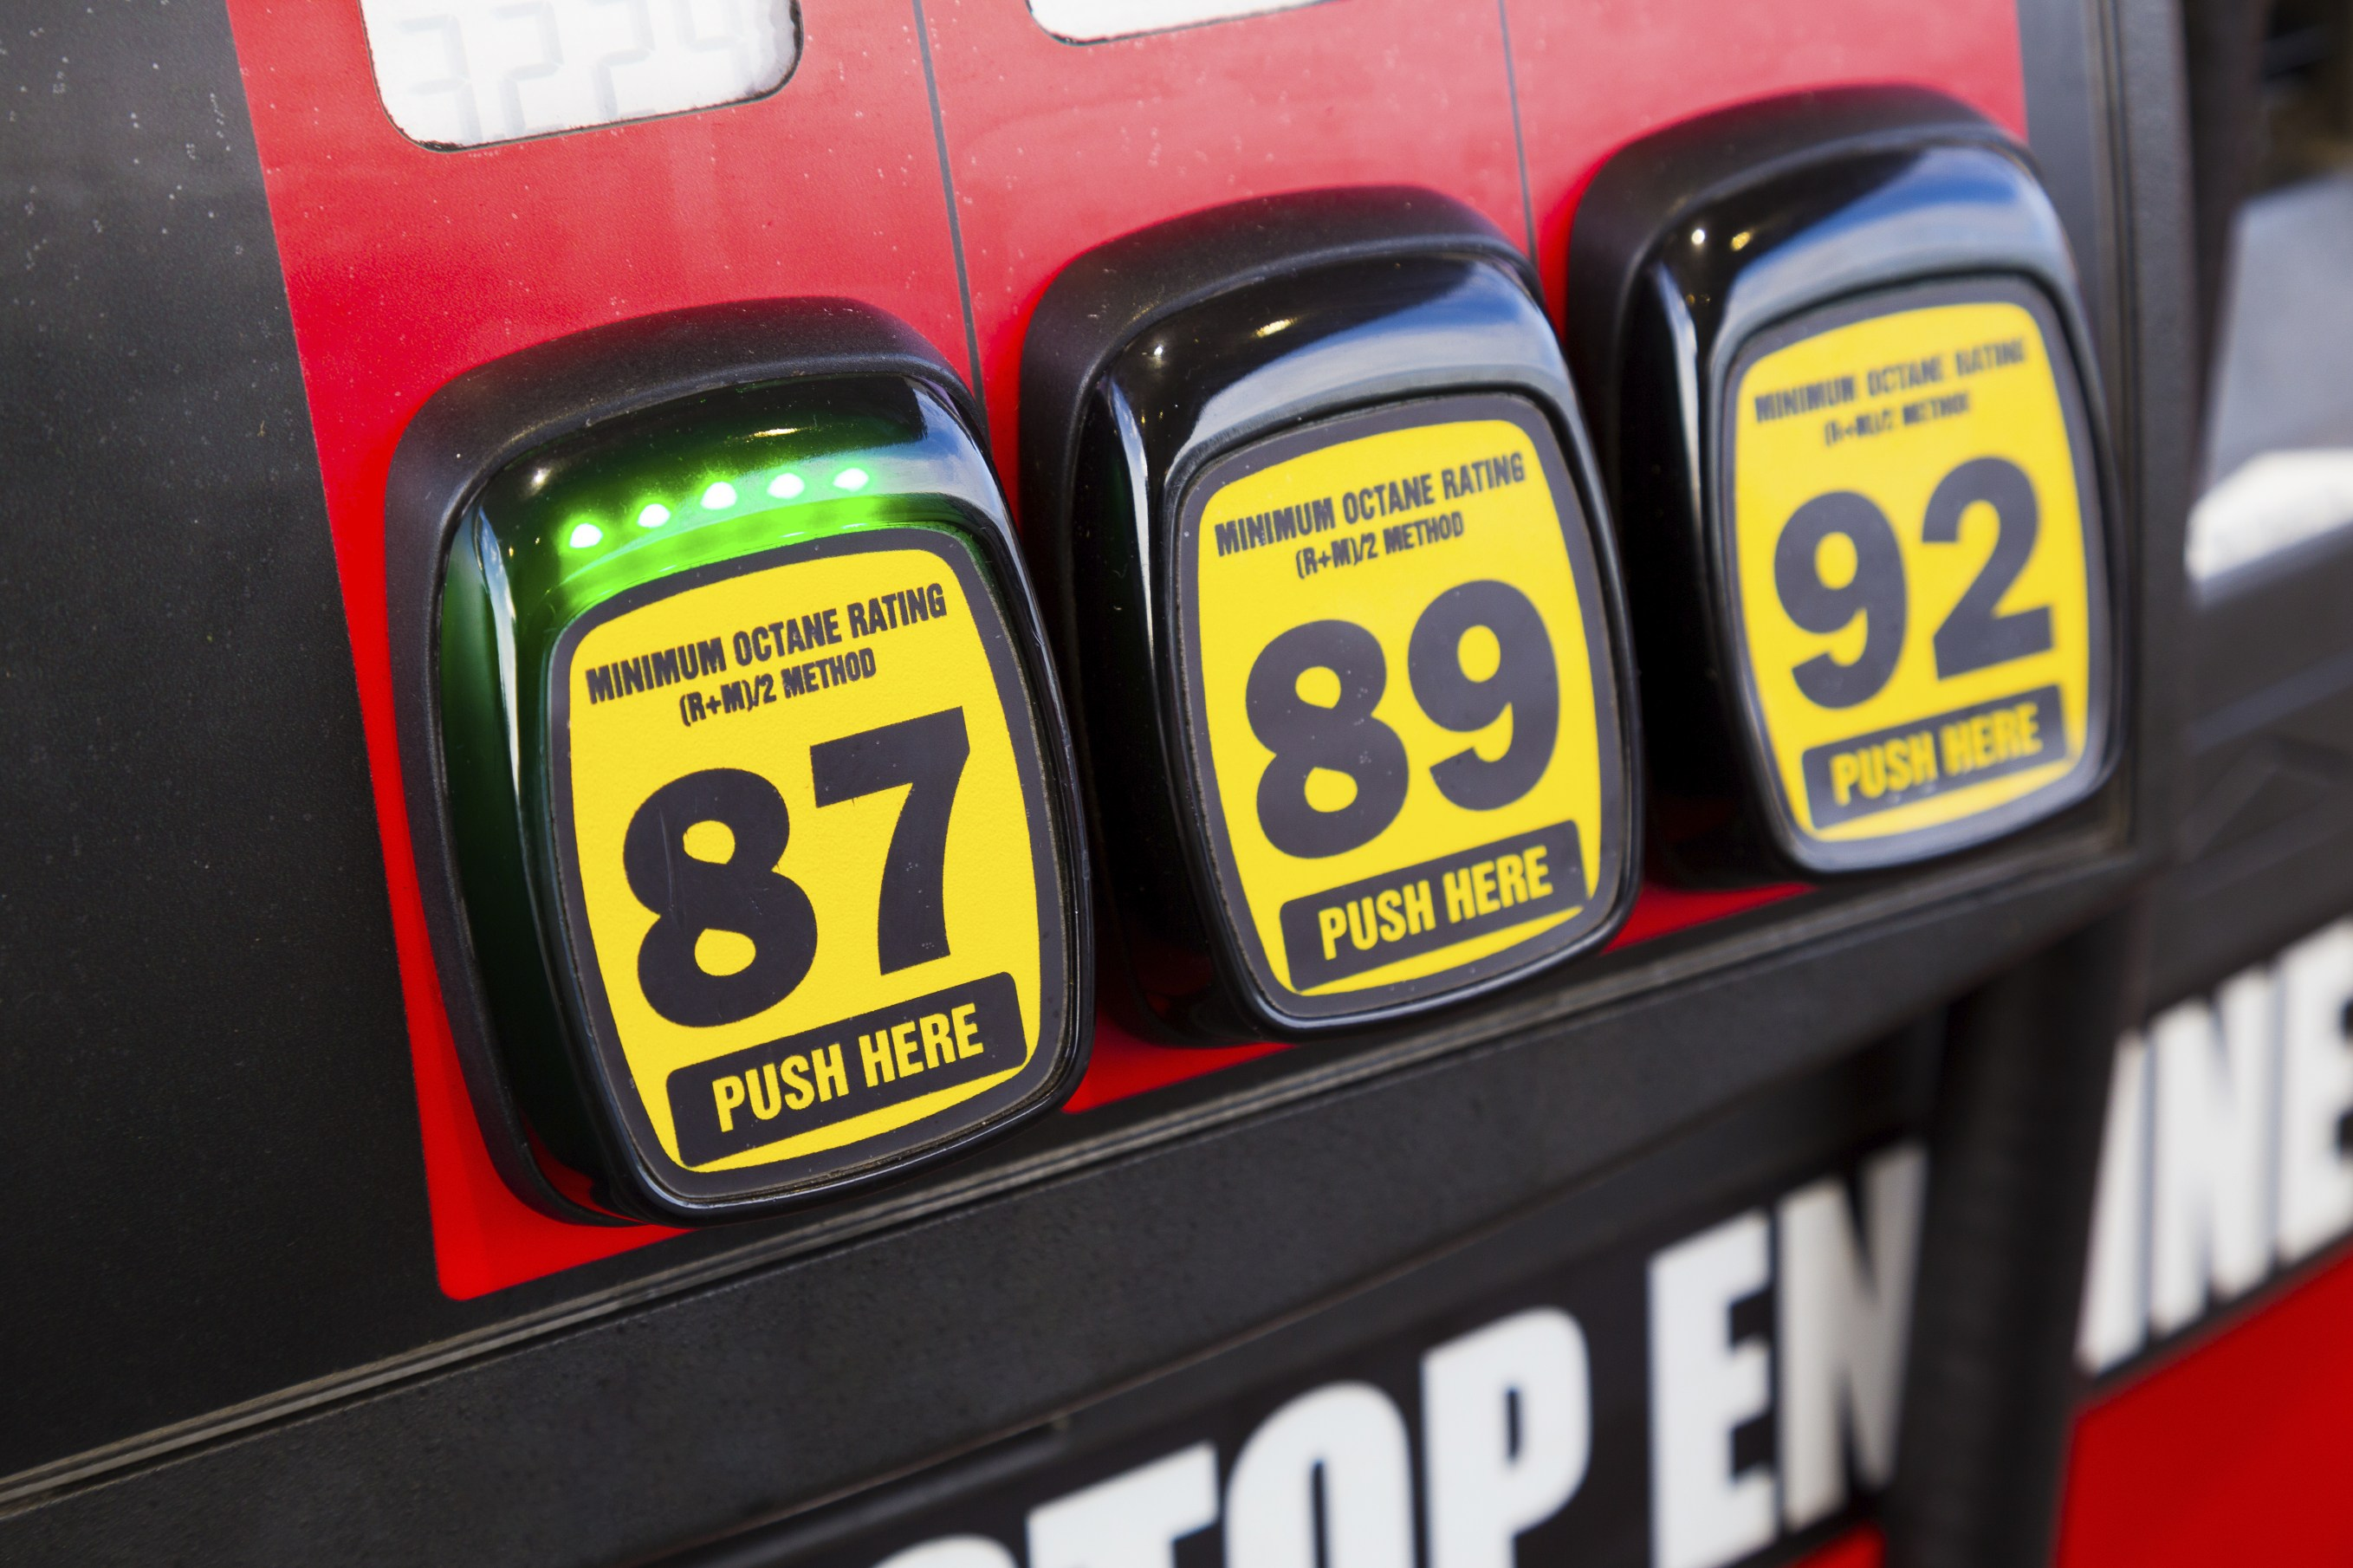 Statewide average gas prices up 2 cents, AAA Michigan reports